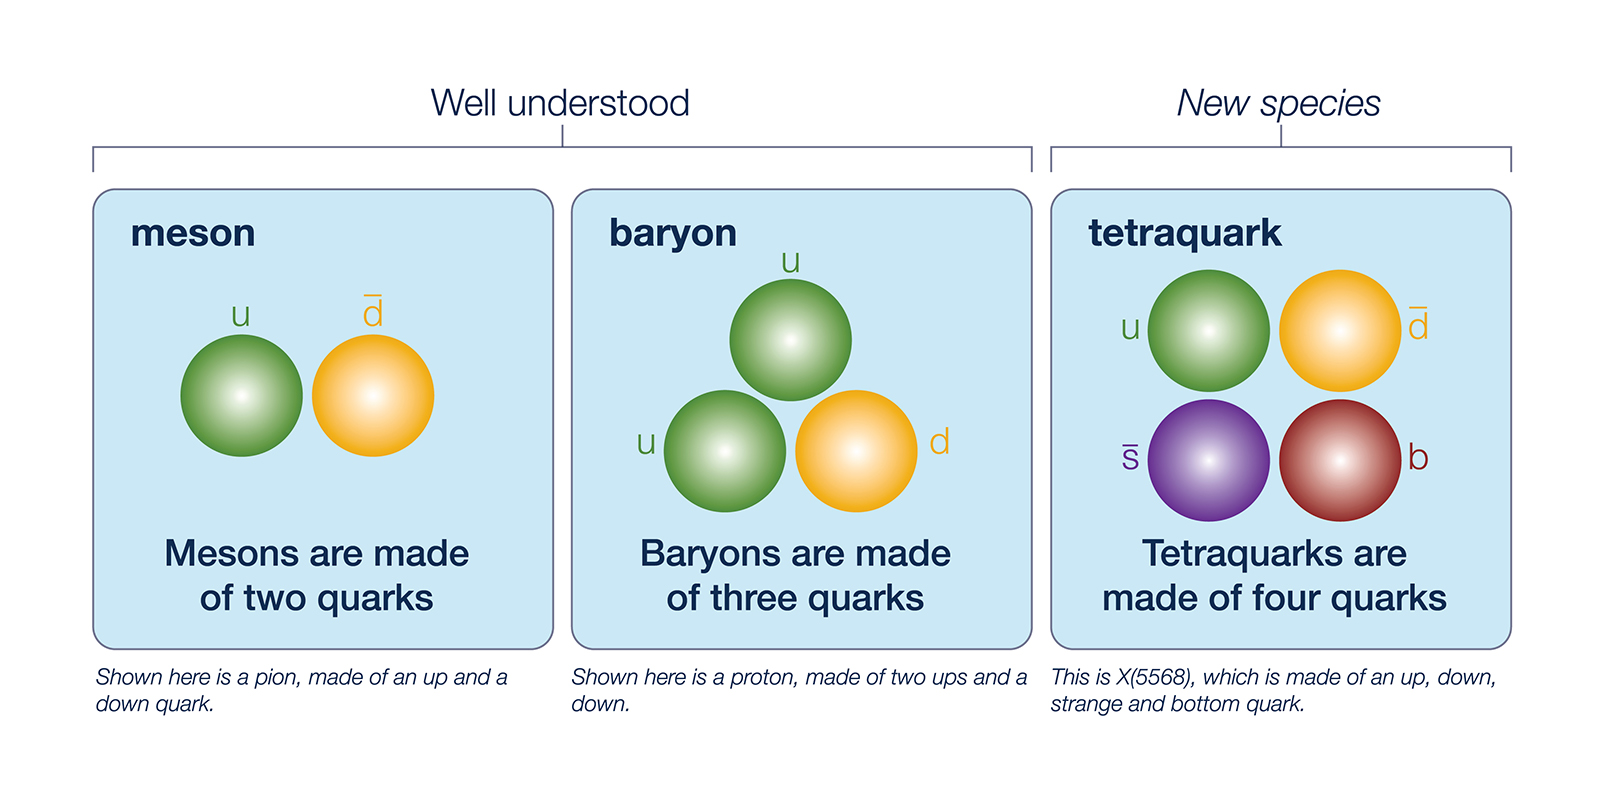 Dzero tetraquark illustration comparison 2